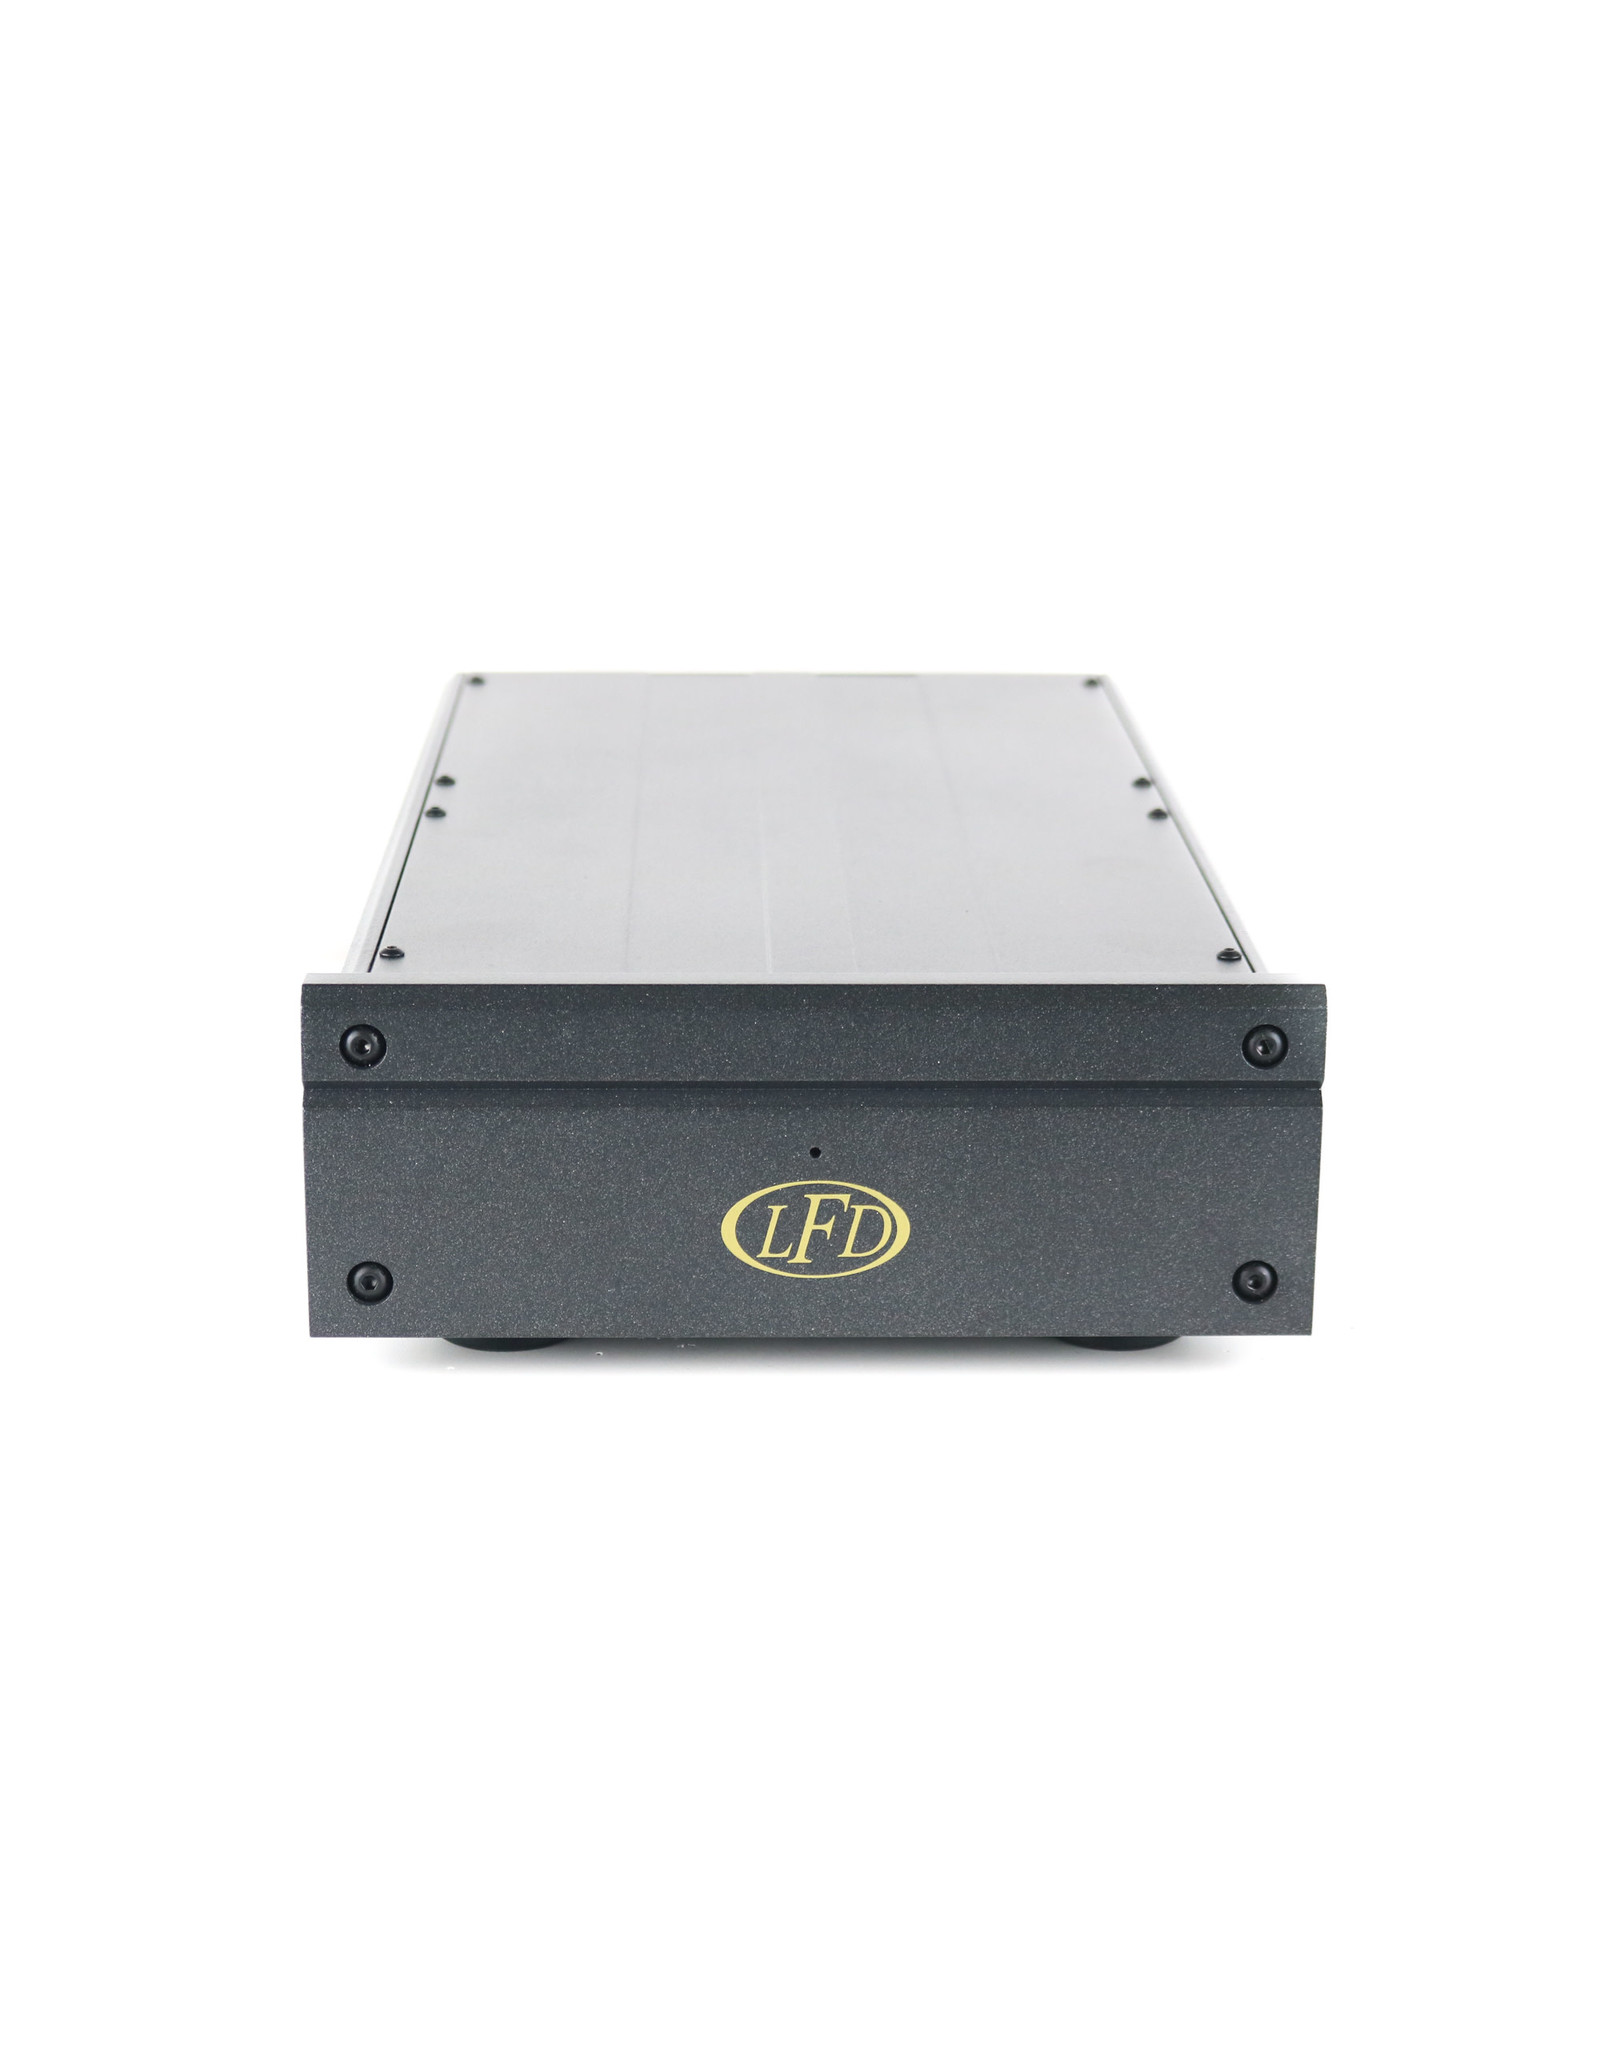 LFD LFD Phonostage LE Phono Preamp USED